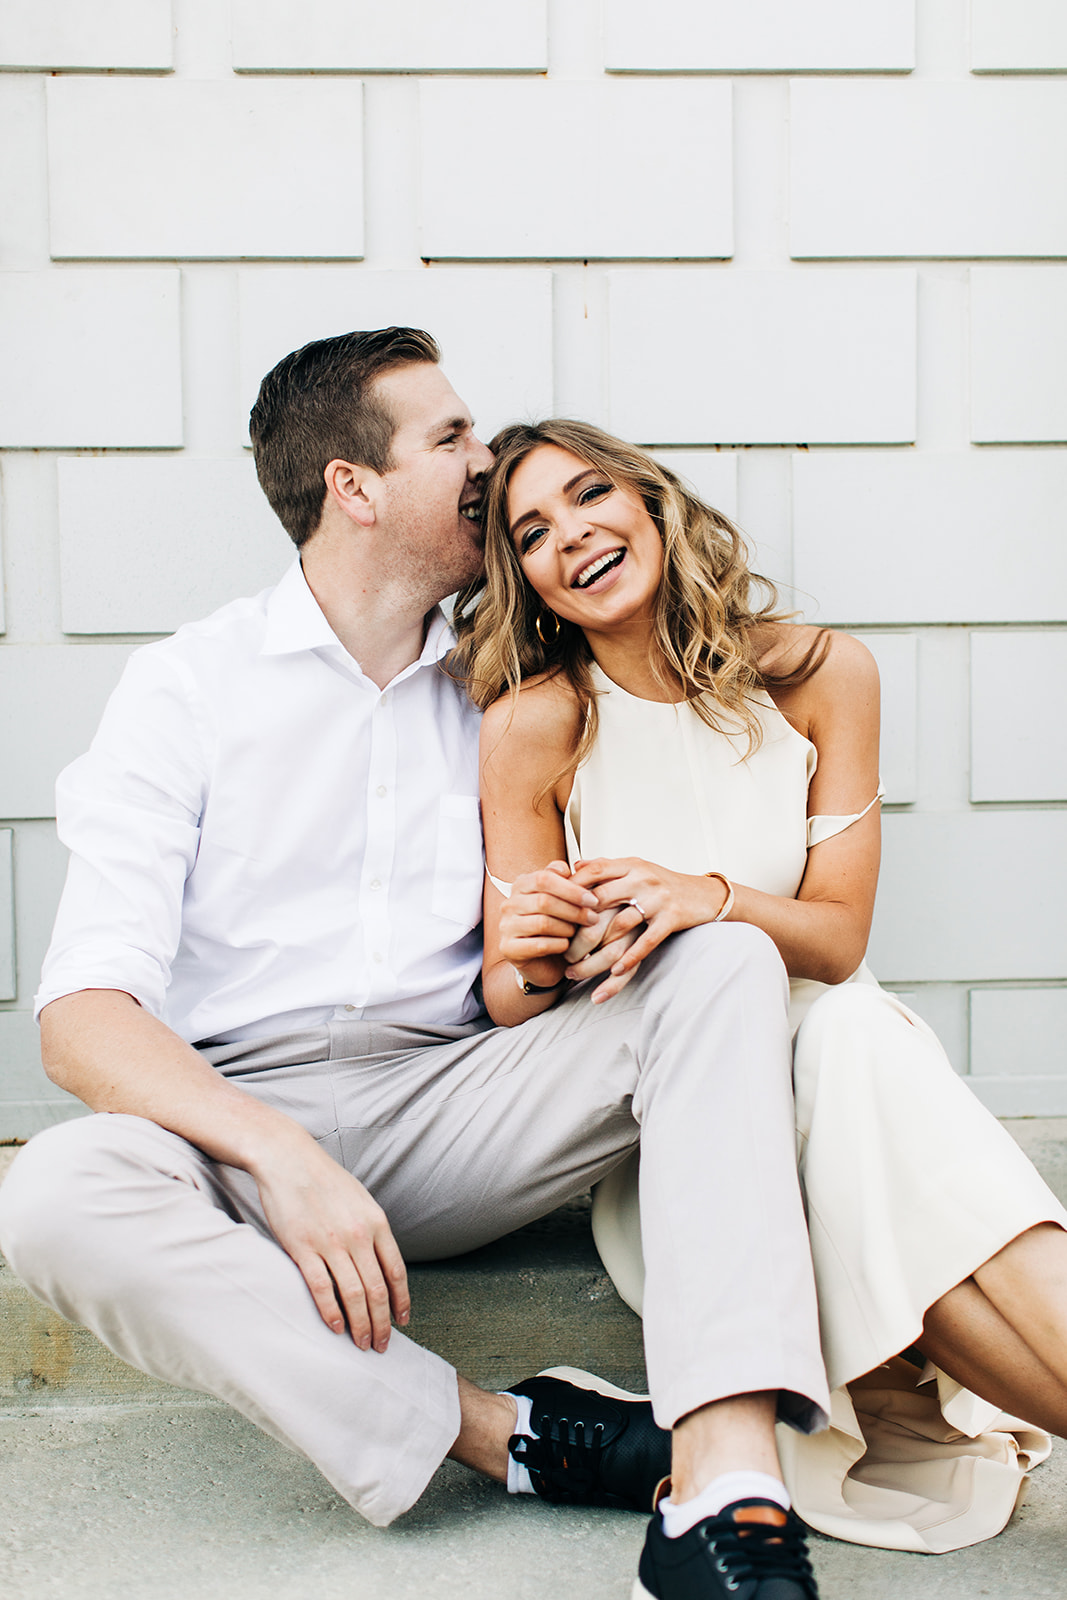 Paulina-Drew_Palm-Springs-Engagement-Photos_Clarisse-Rae_Southern-California-Wedding-Photographer-20